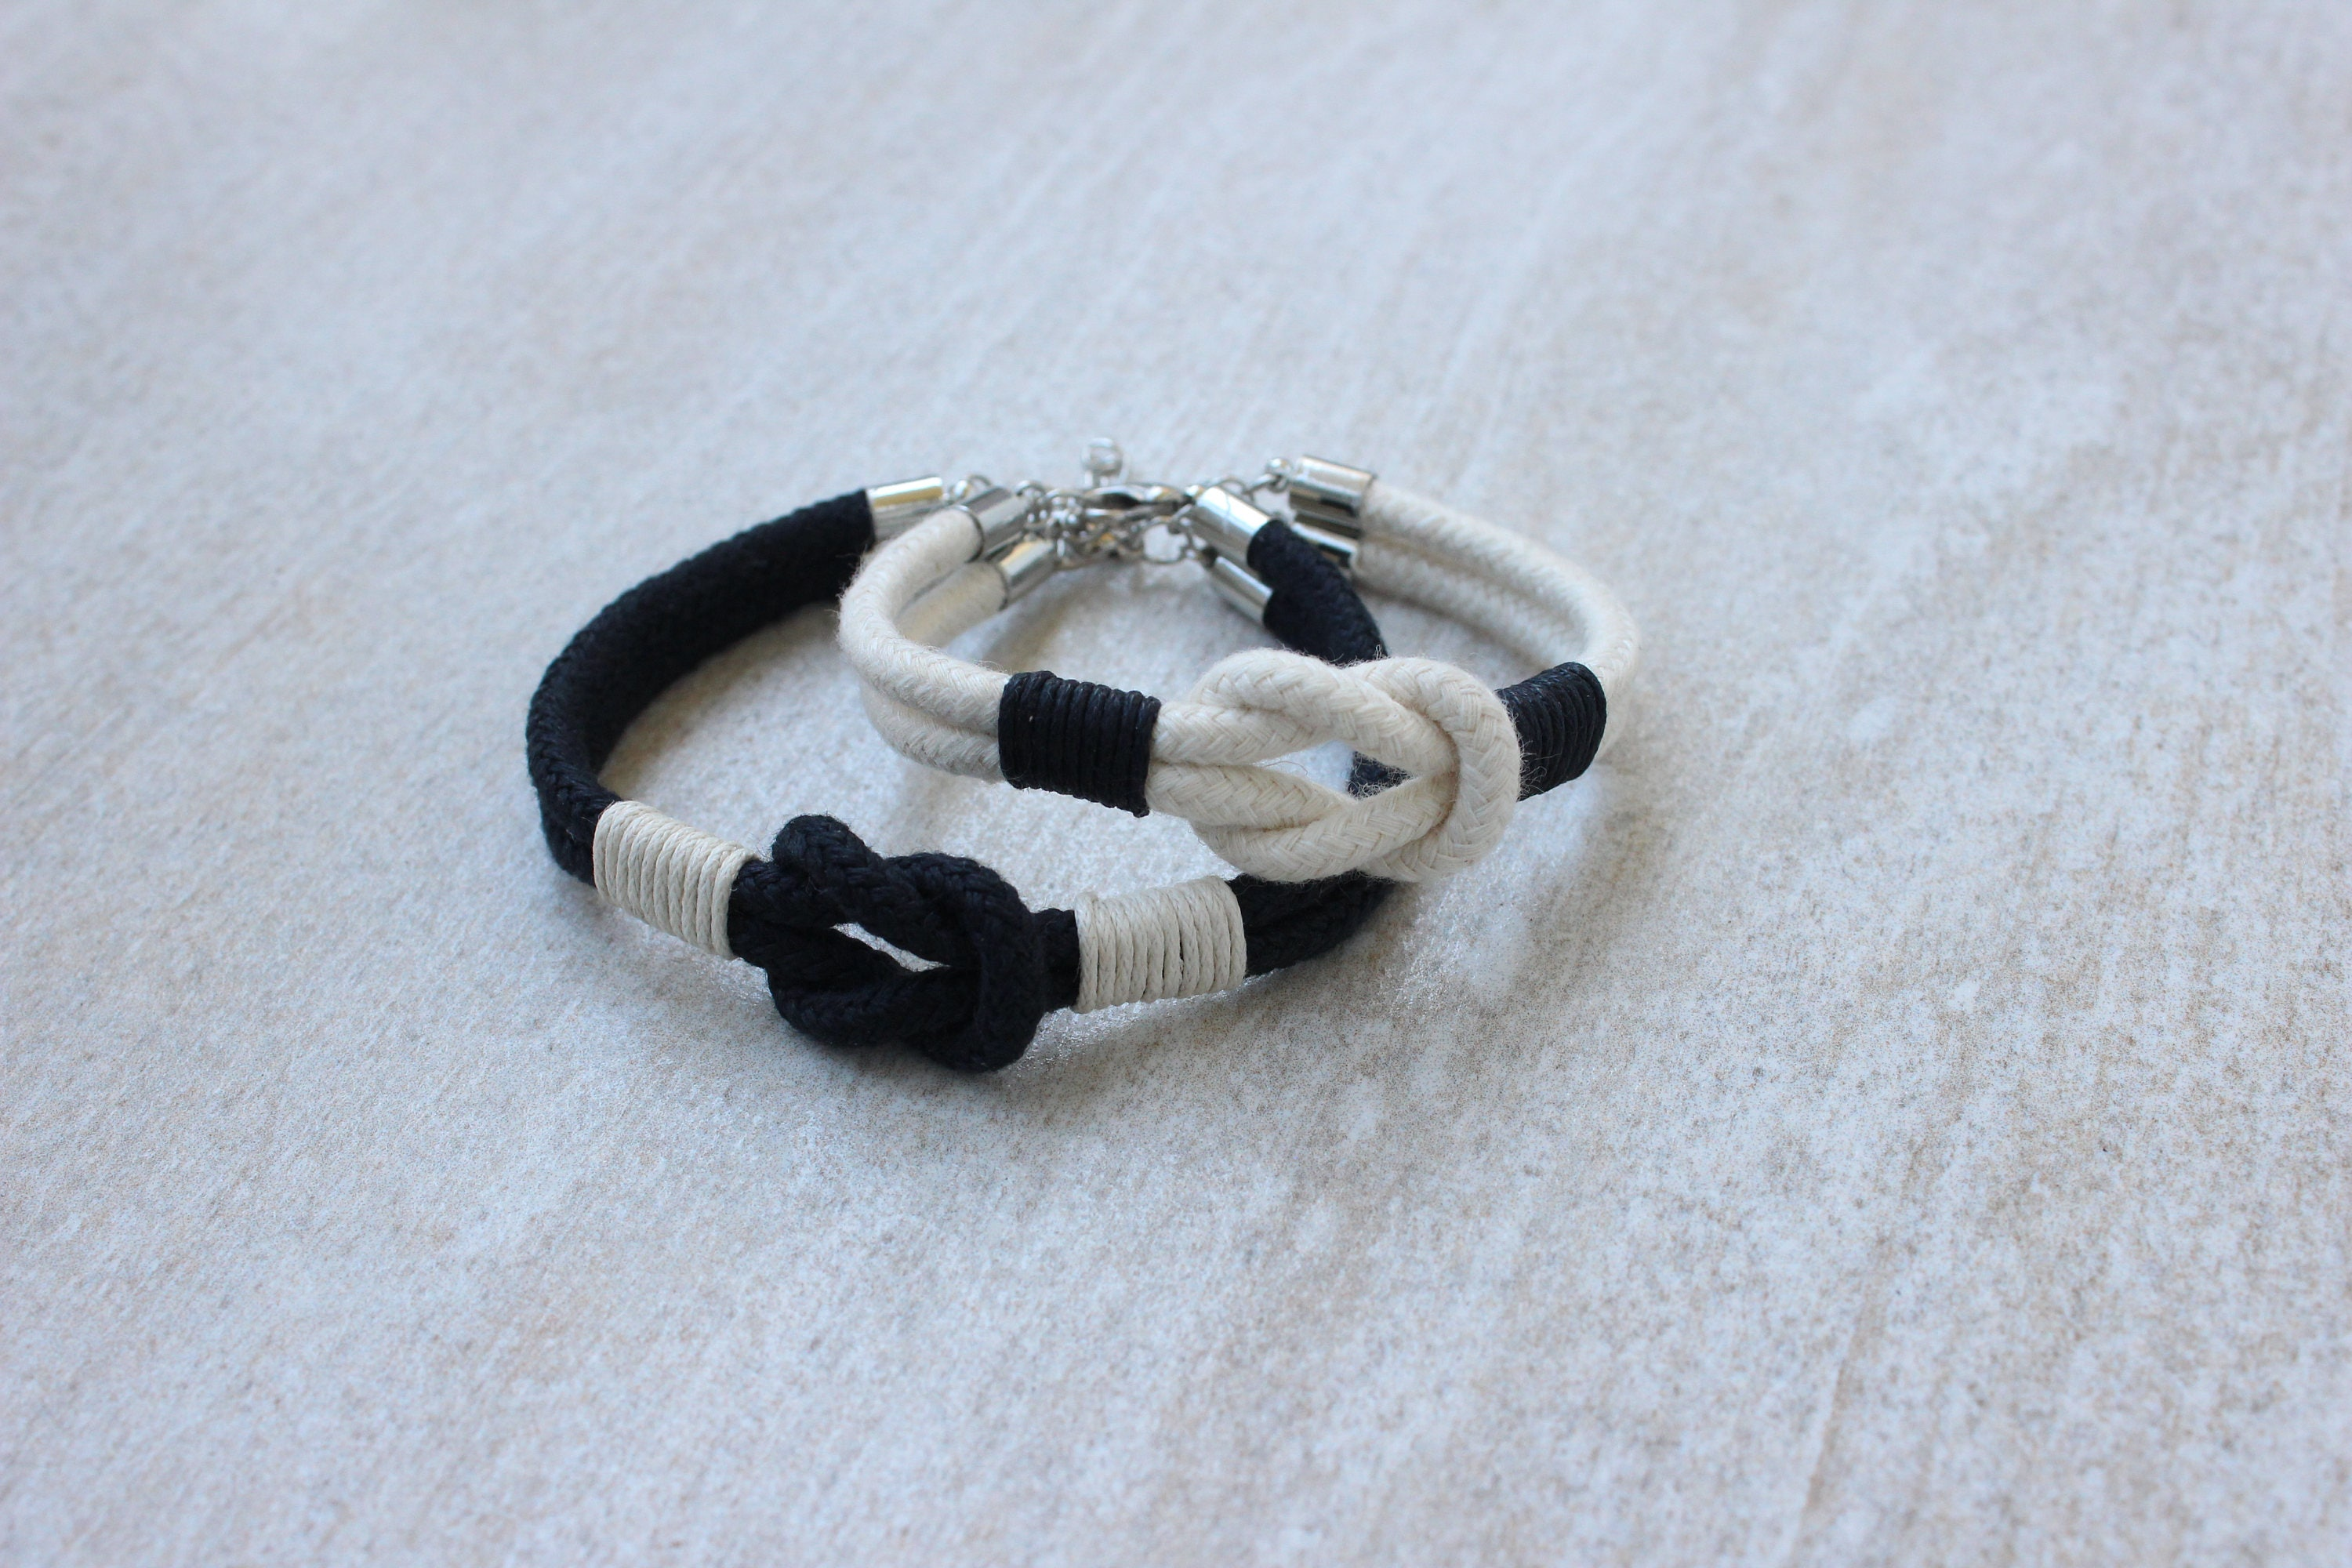 Long distance relationship bracelet his and her bracelet cotton